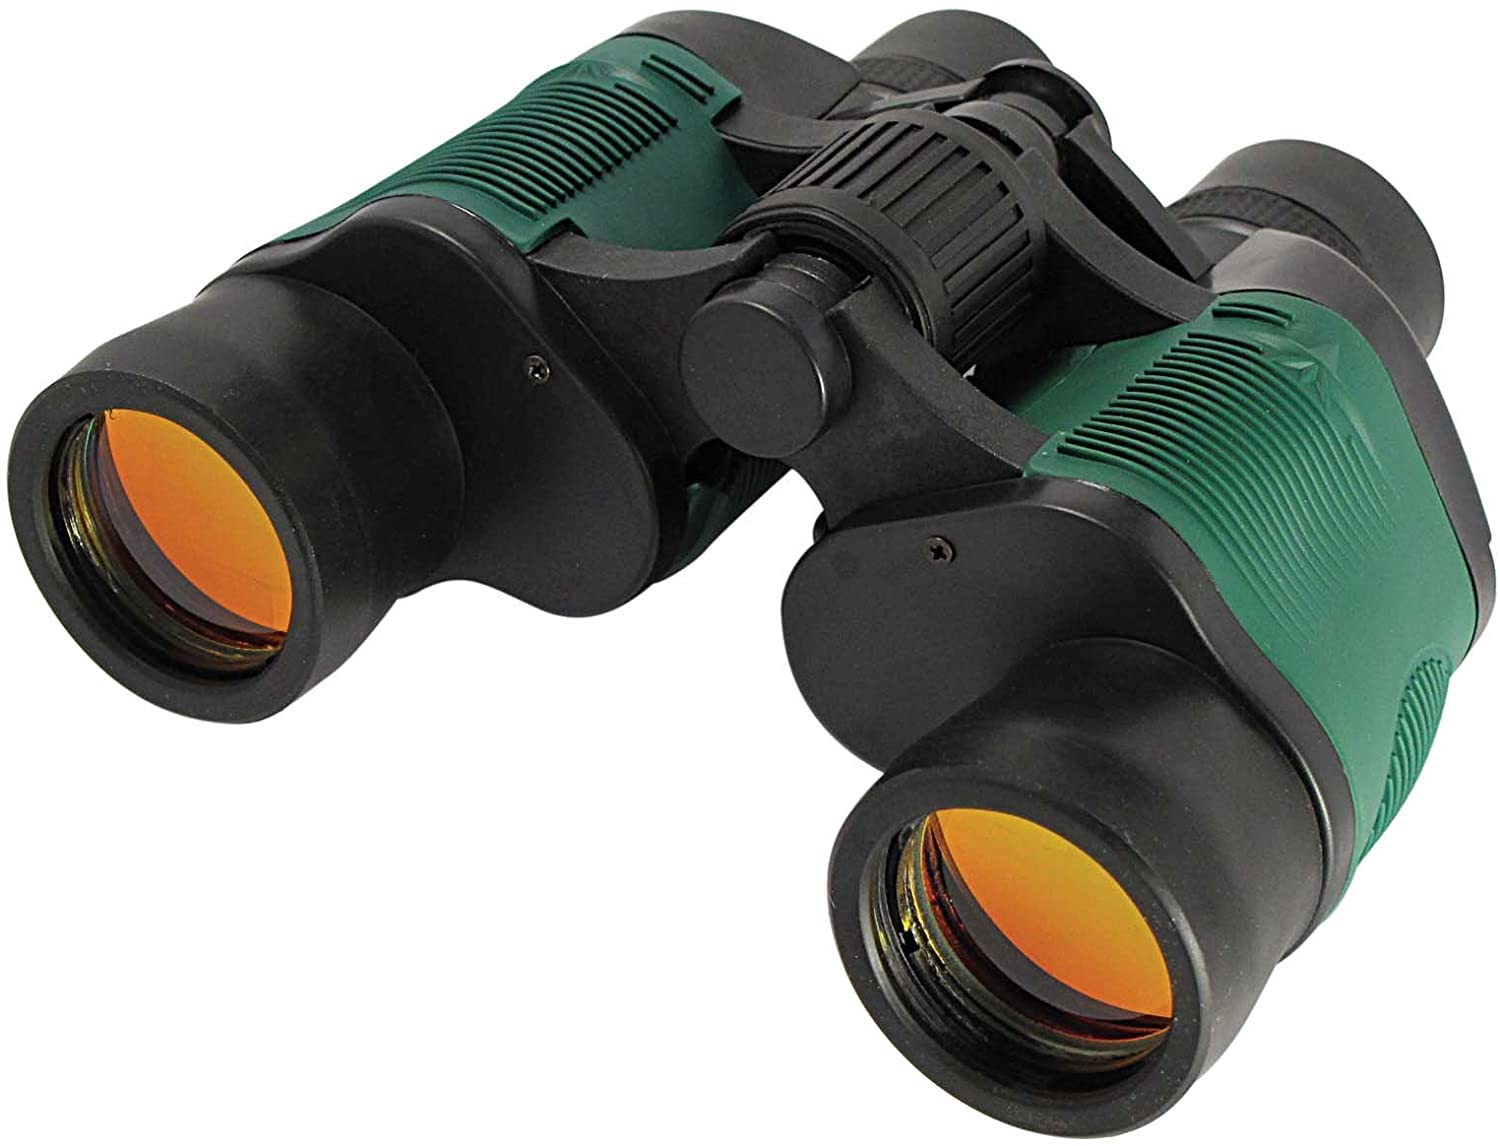 Tactical Shooting Survival Emergency Scouting Camp binoculars for survival kits, camping, hiking, hunting and bird watching. Limited stock